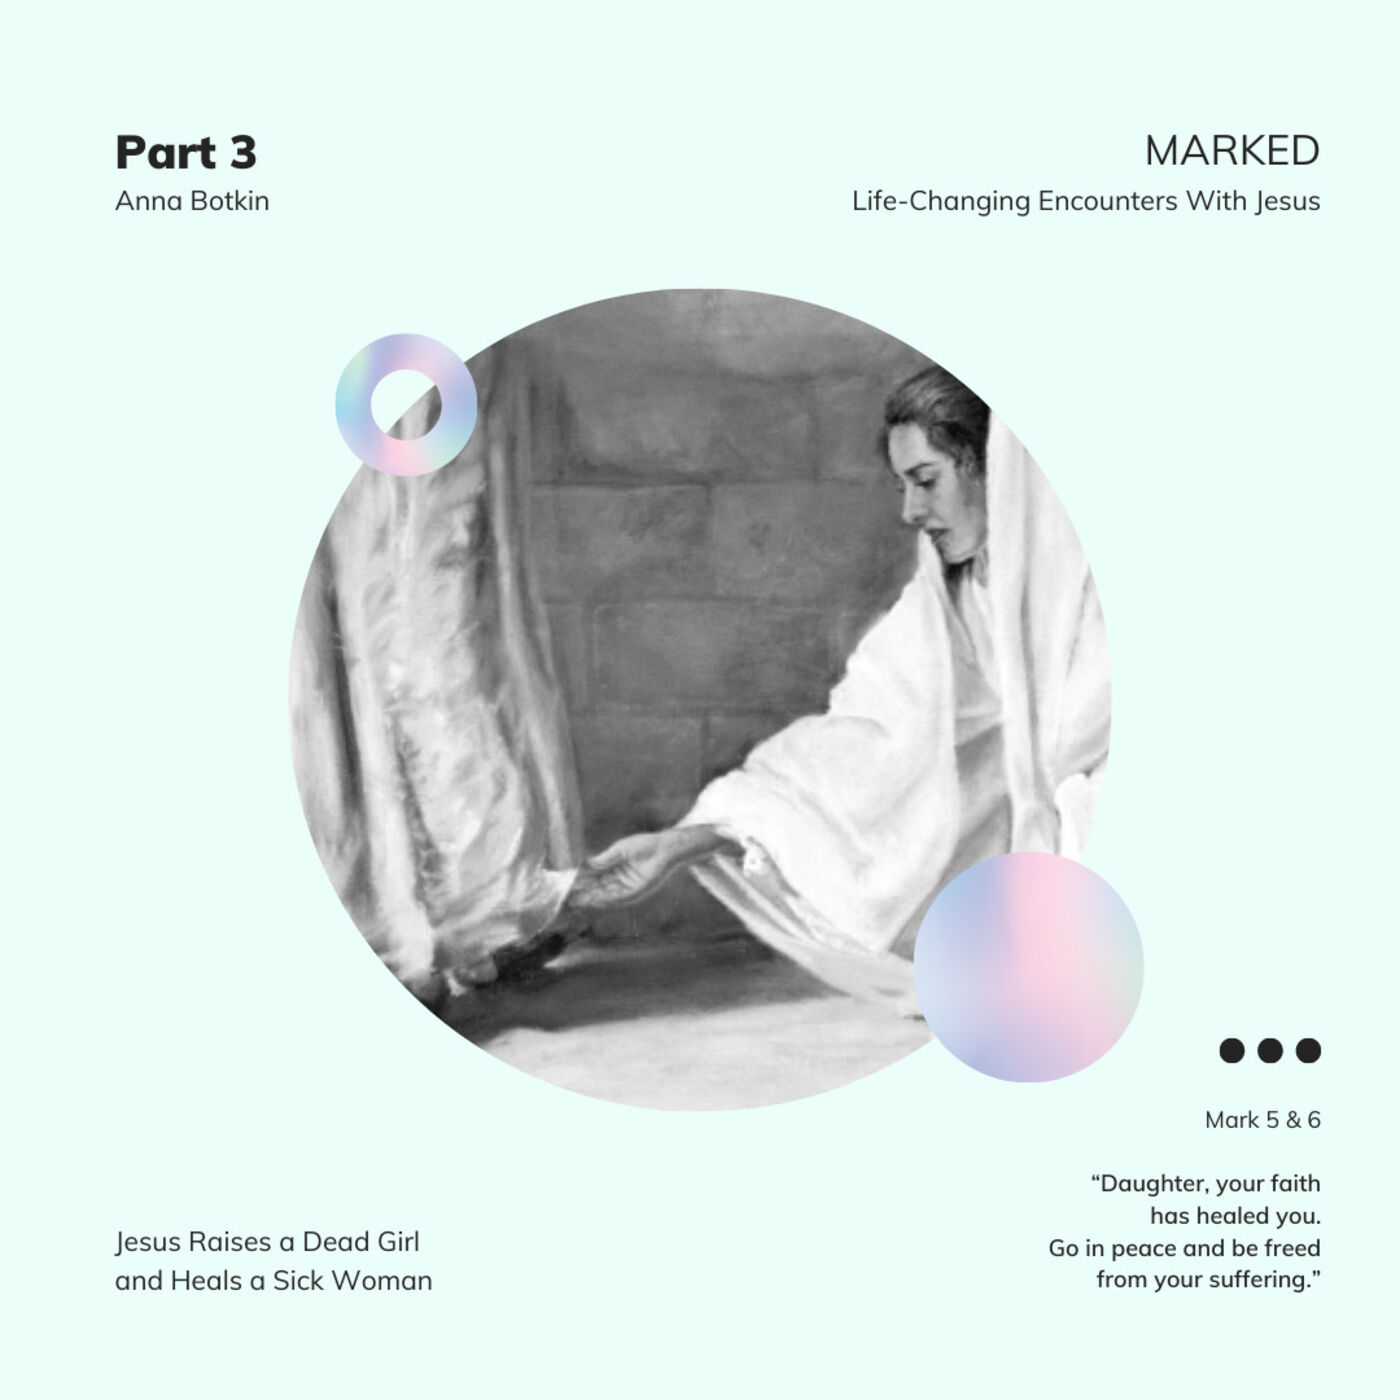 MARKED. Life-Changing Encounters With Jesus - Mark 5:21-43 - Anna Botkin